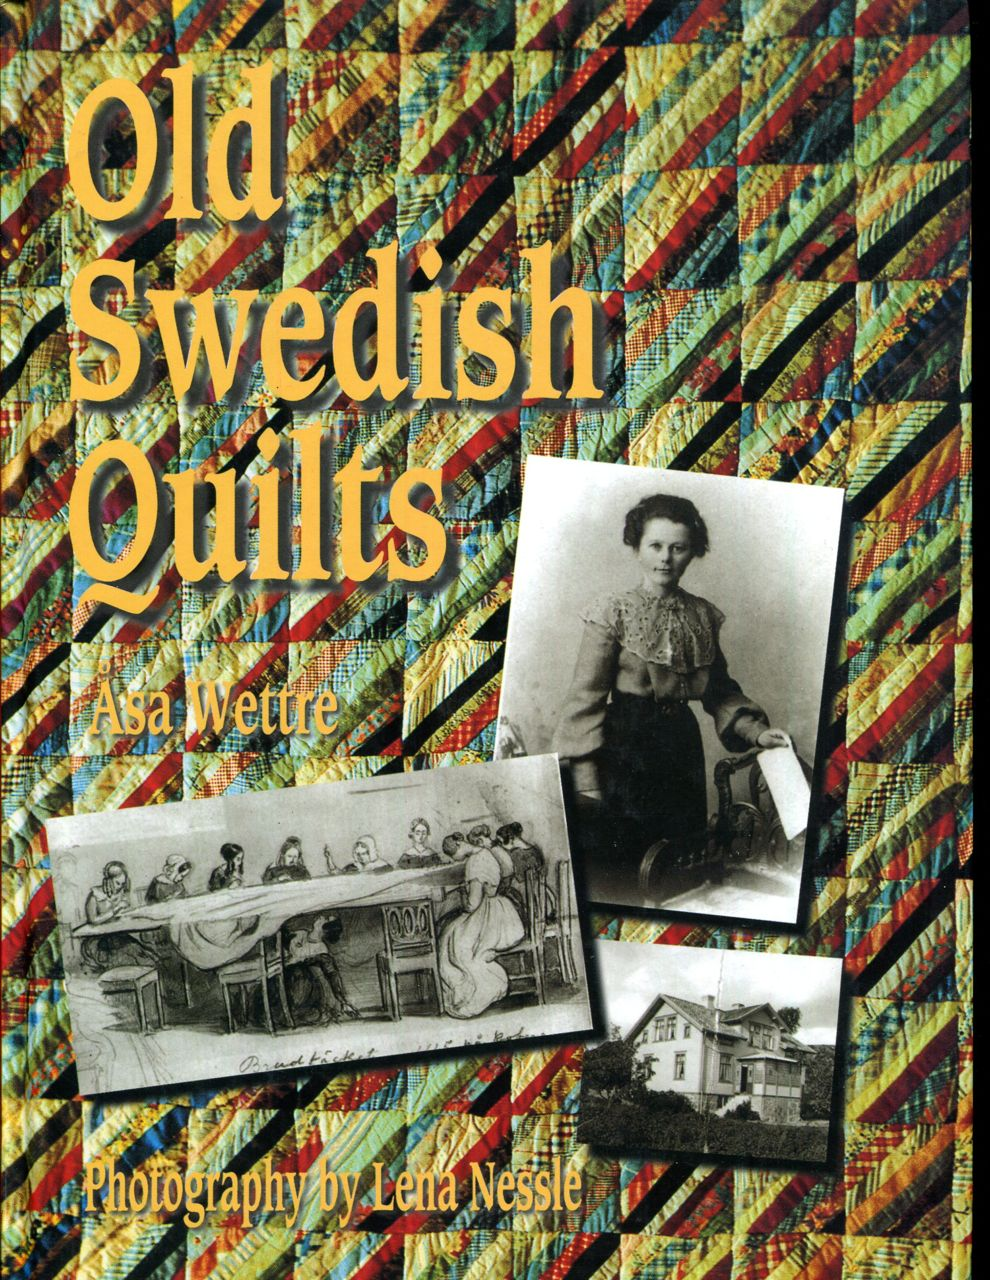 Old Swedish Quilts